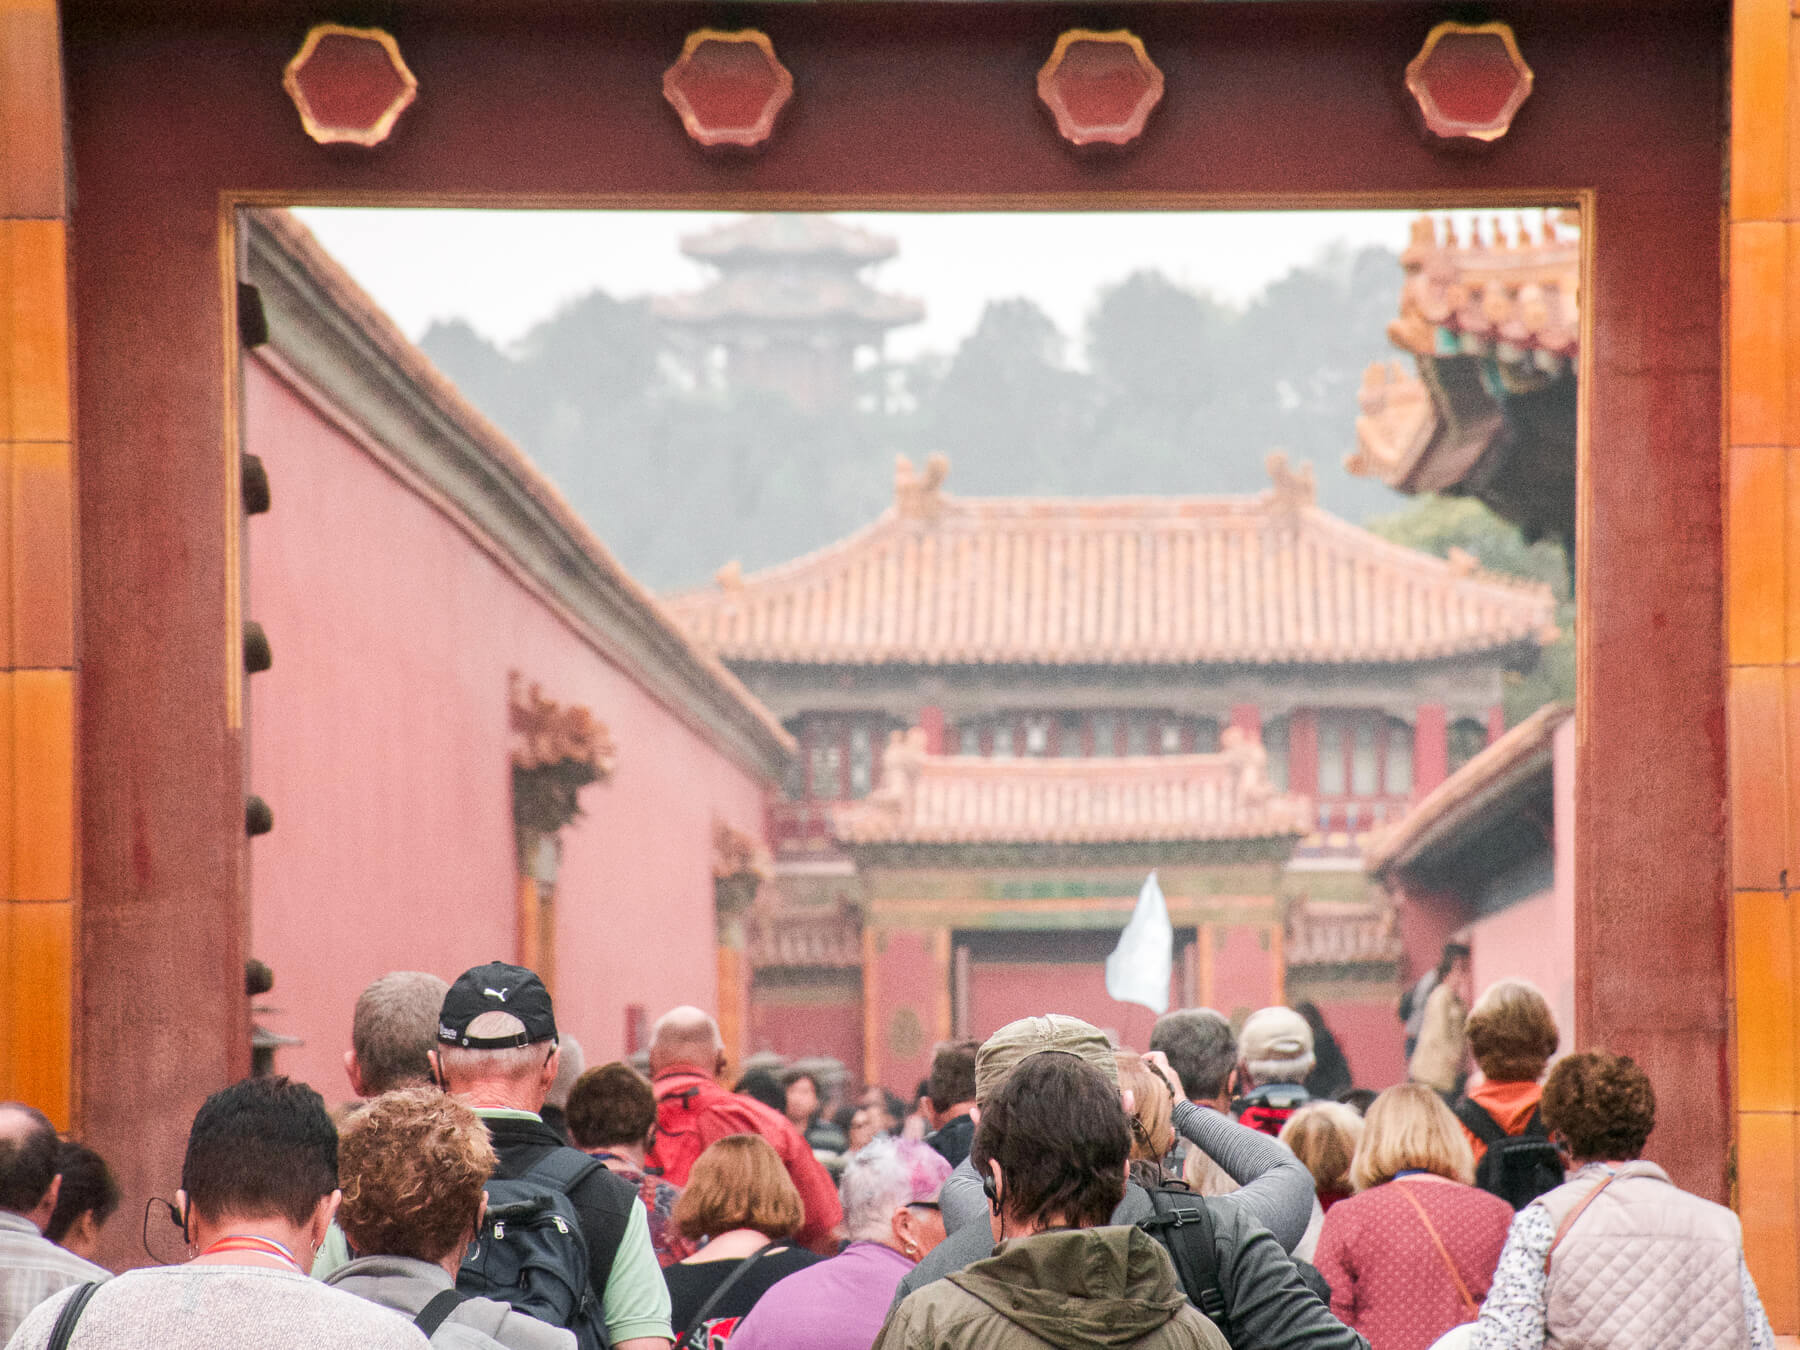 A group of tourists from Trip A Deal, following a blue flag through the Forbidden City